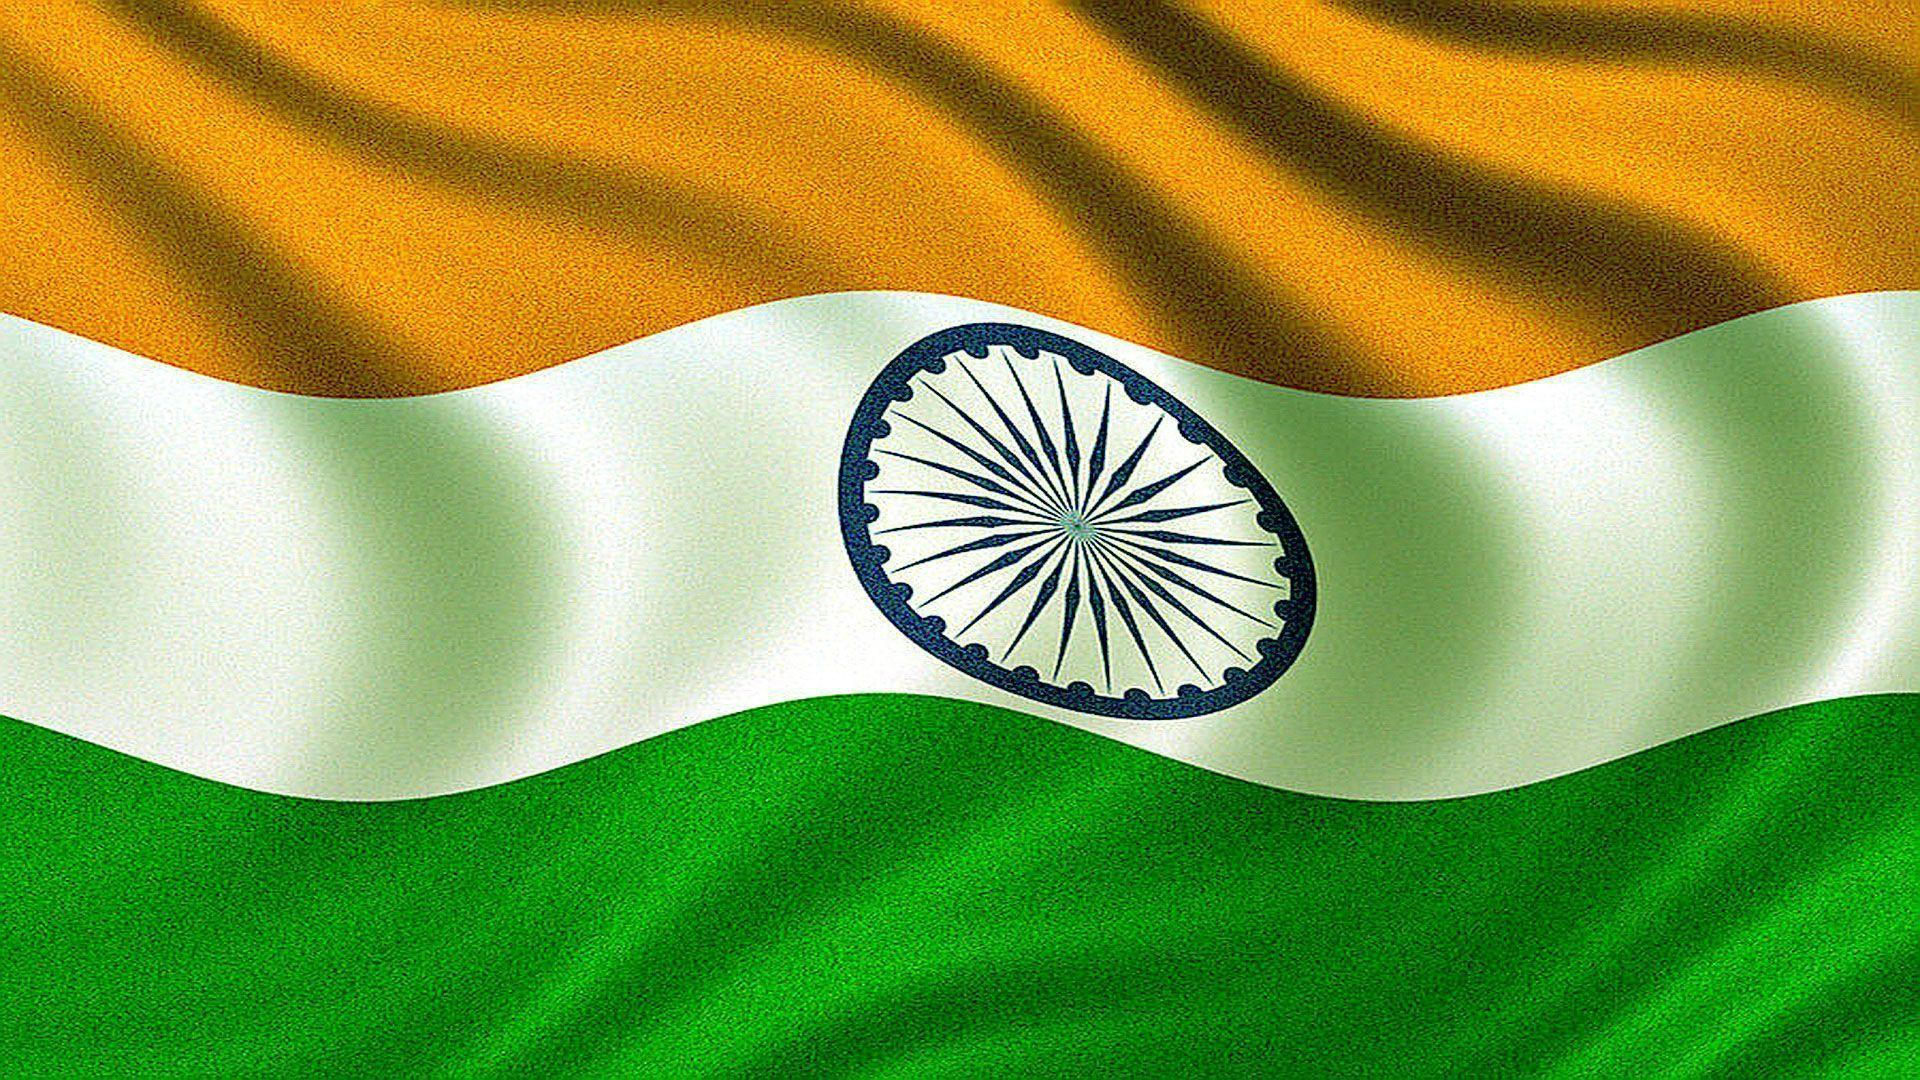 New} Indian Flag HD Wallpapers Image 2015